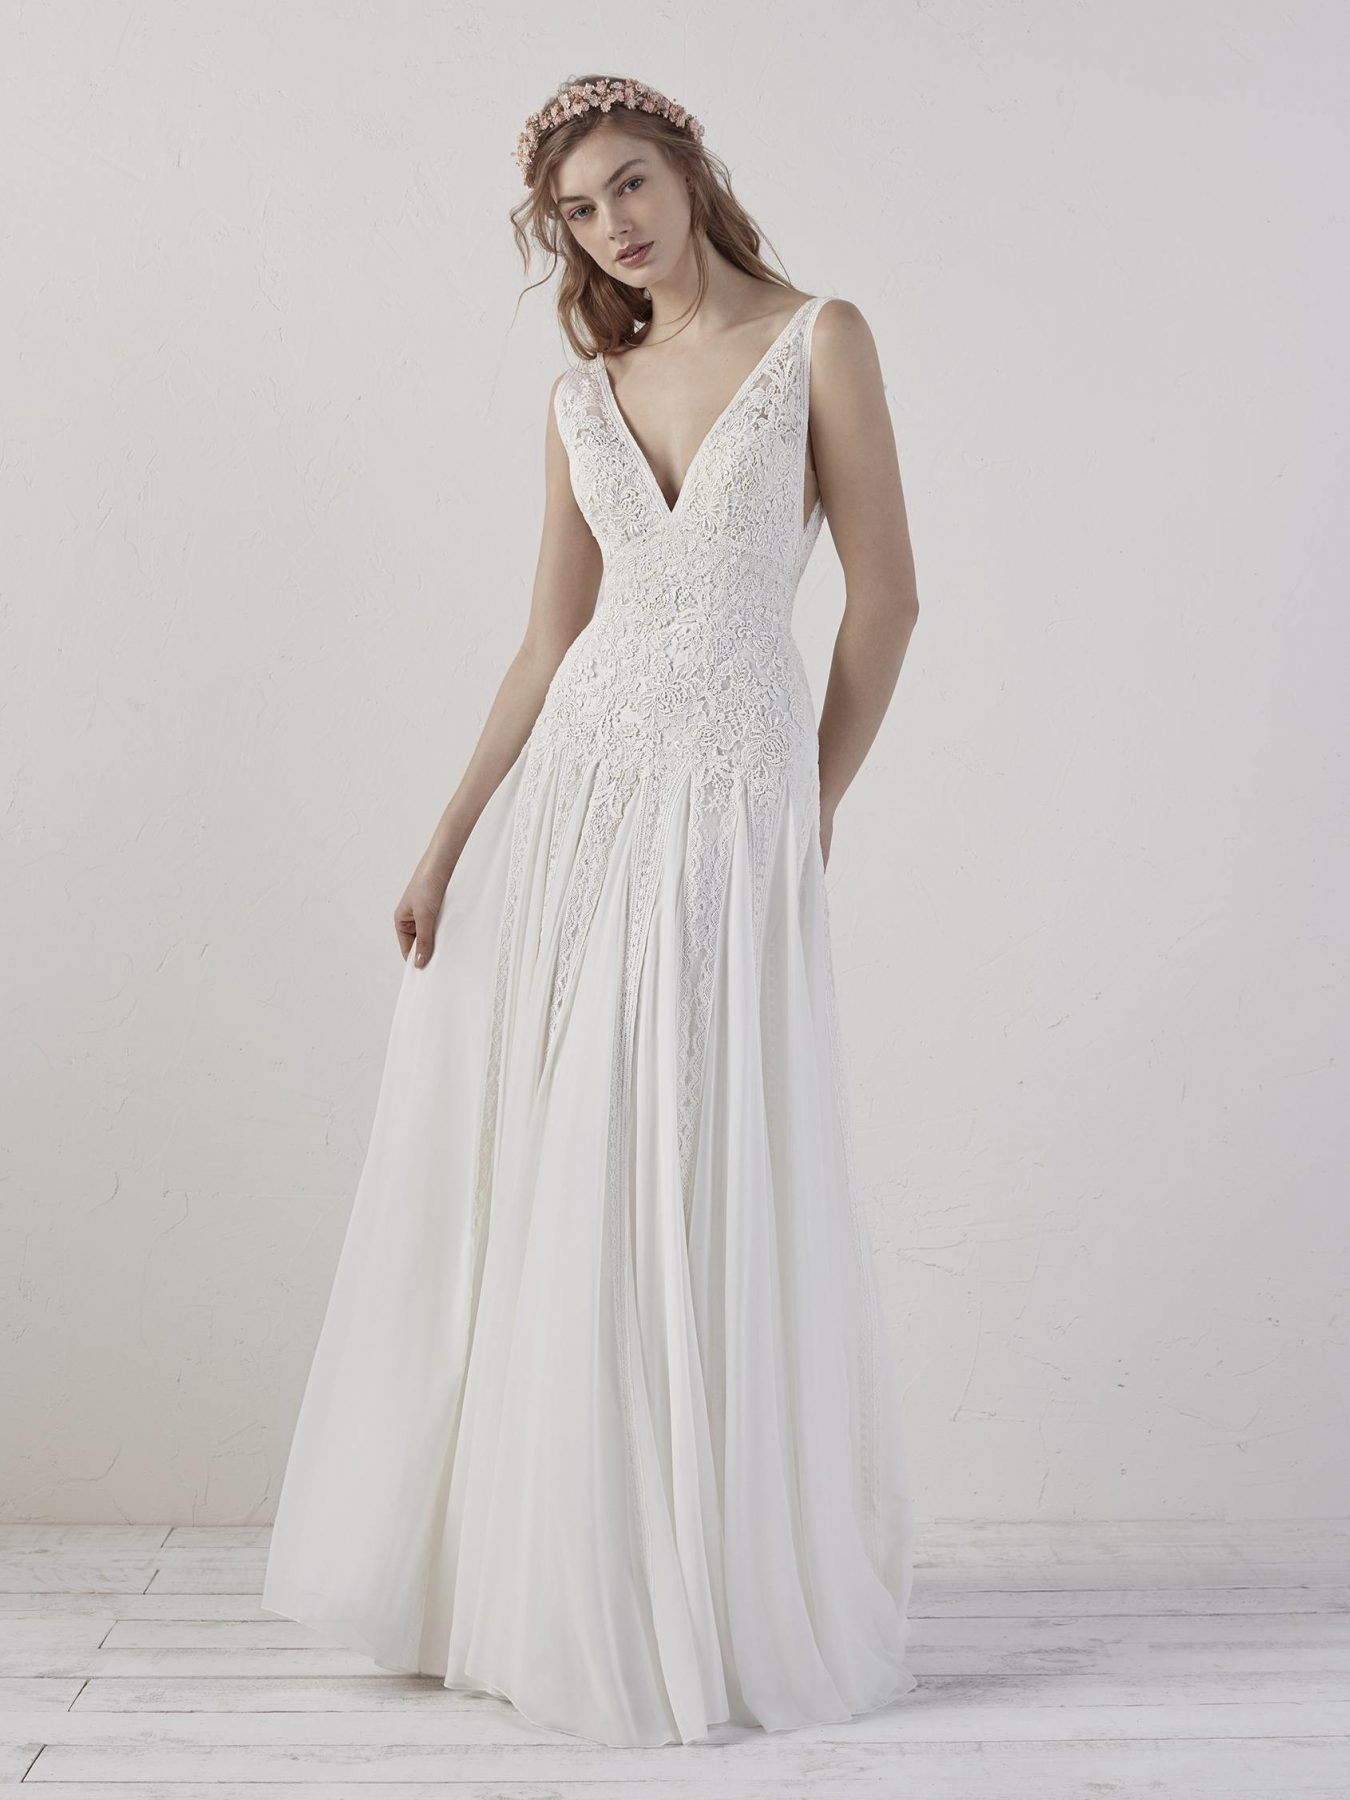 Wedding dresses sacramento  Lace sleeveless Vneck Aline wedding dress  Pronovias  Style